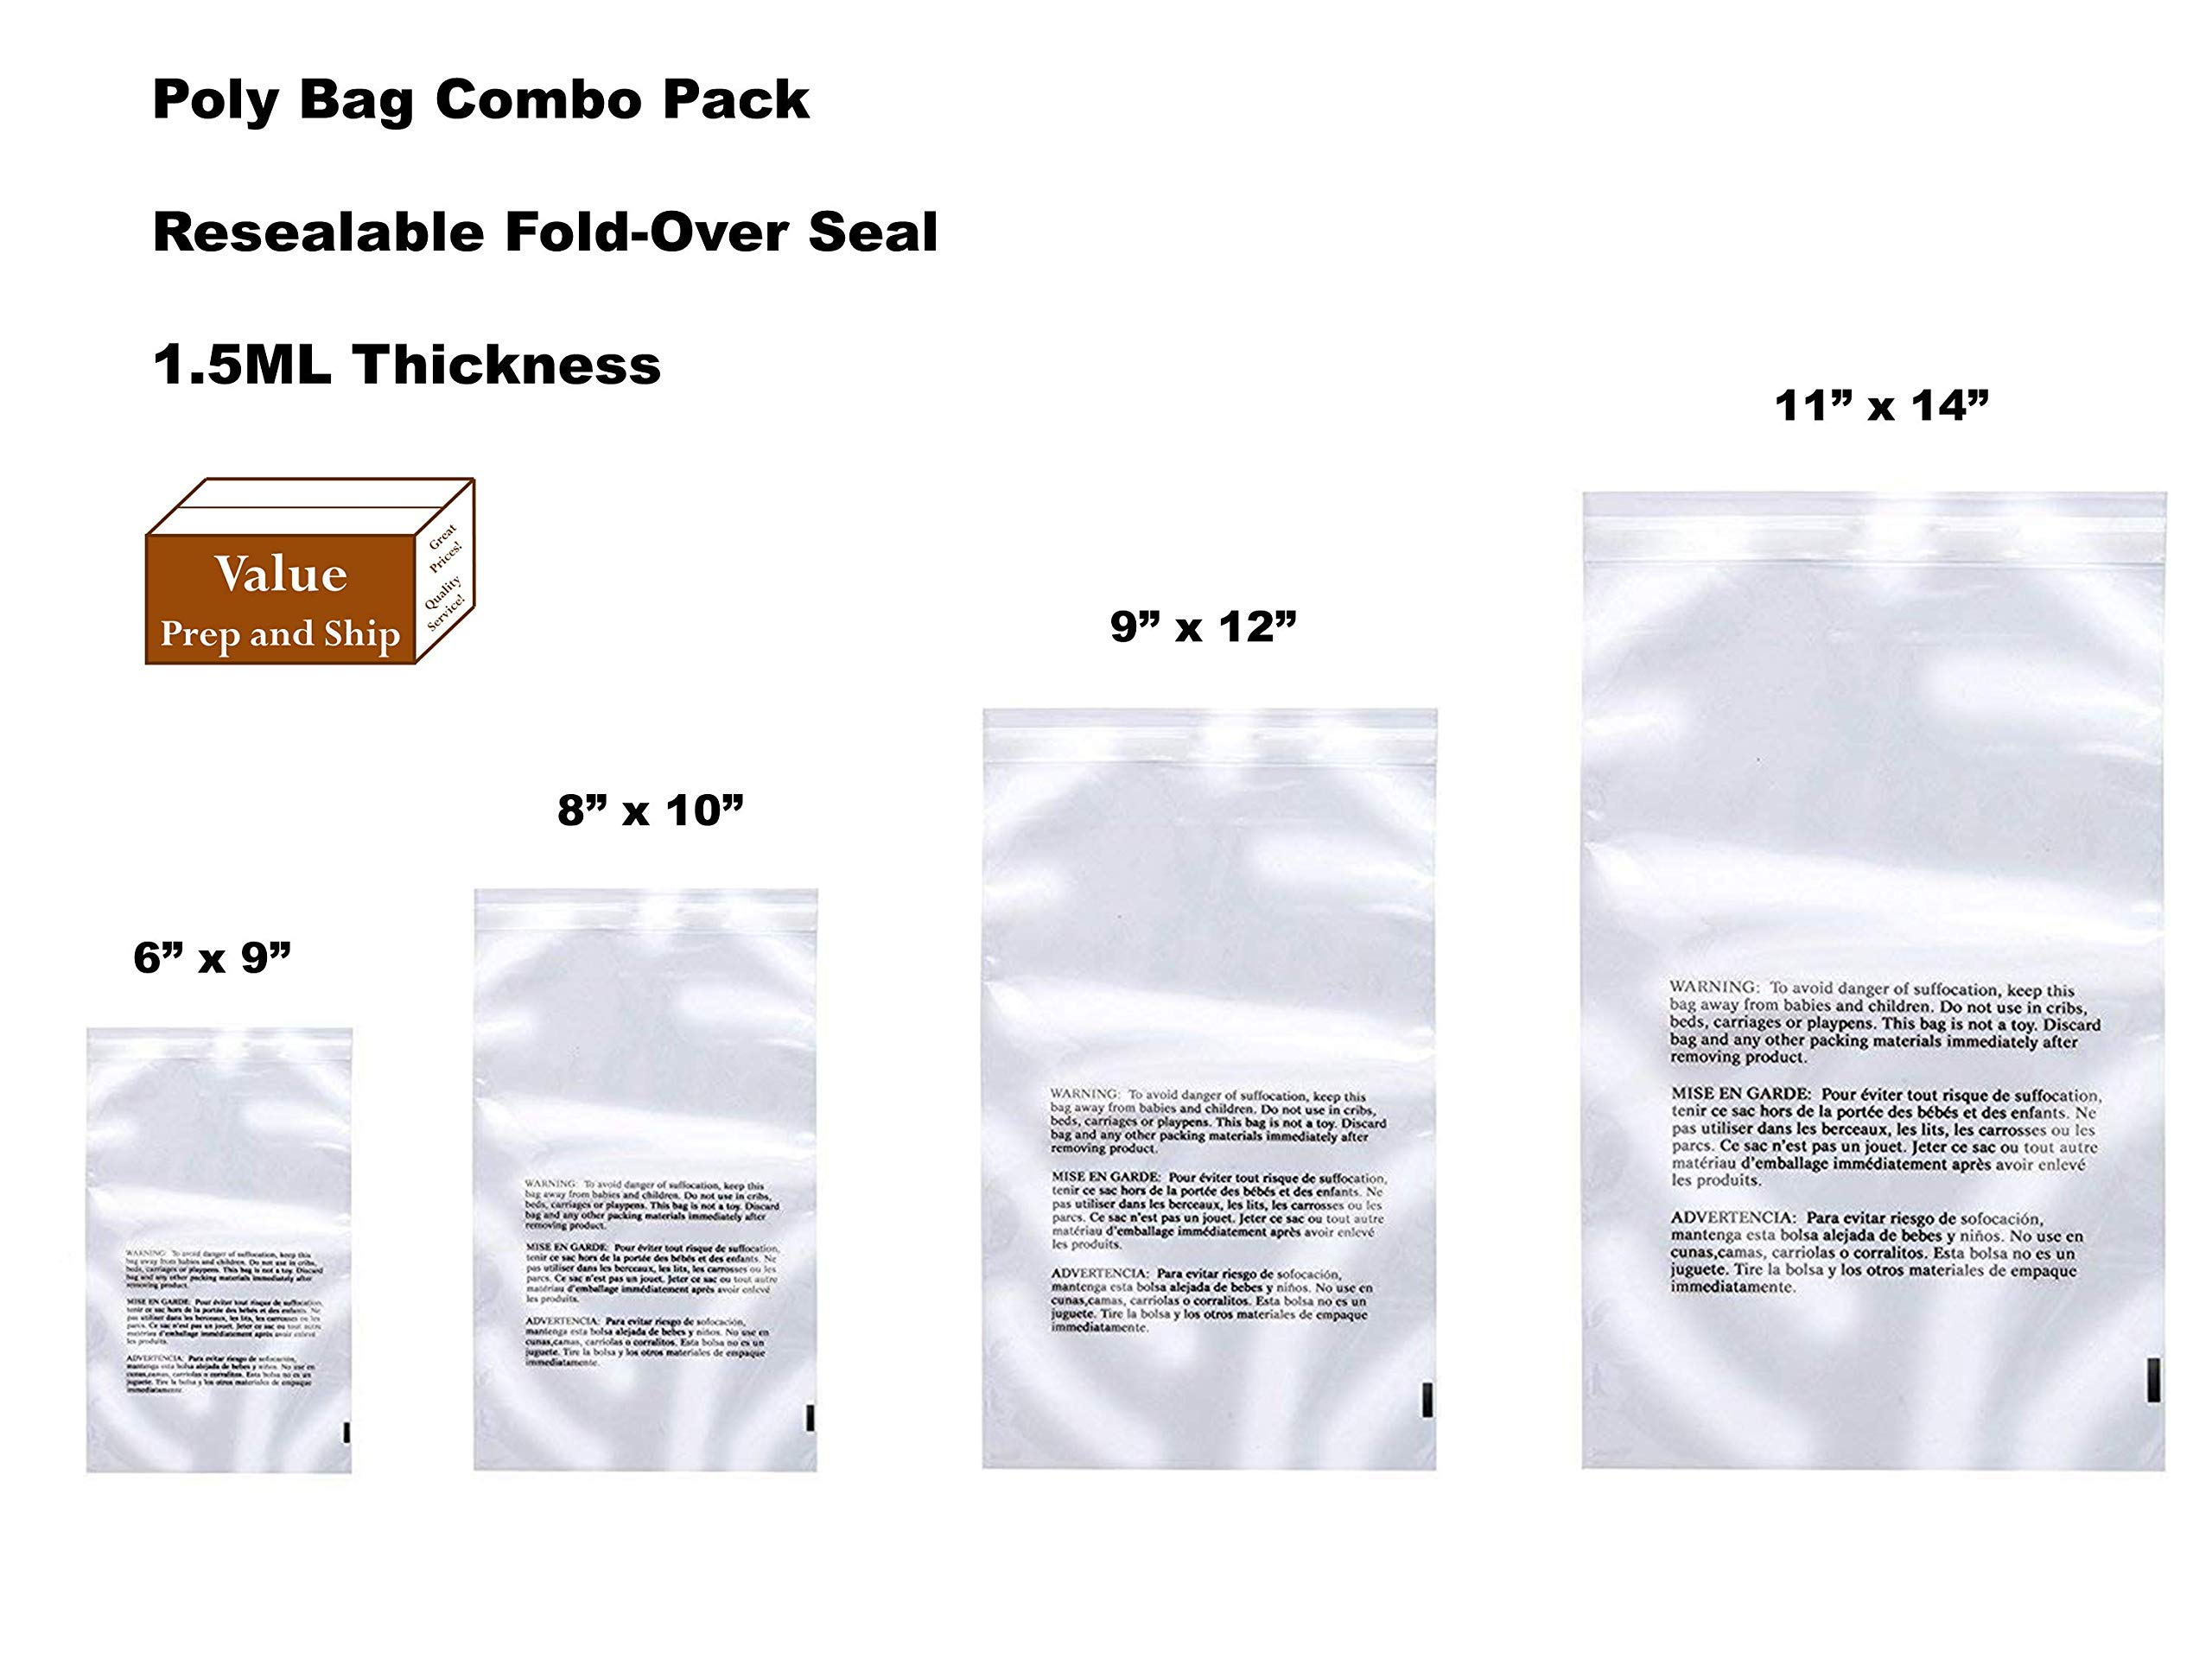 Clear Poly Bag Combo Set, 400 Total Poly Bags, Self Sealing with Suffocation Warning,100 Per Size, 1.5ml Thickness